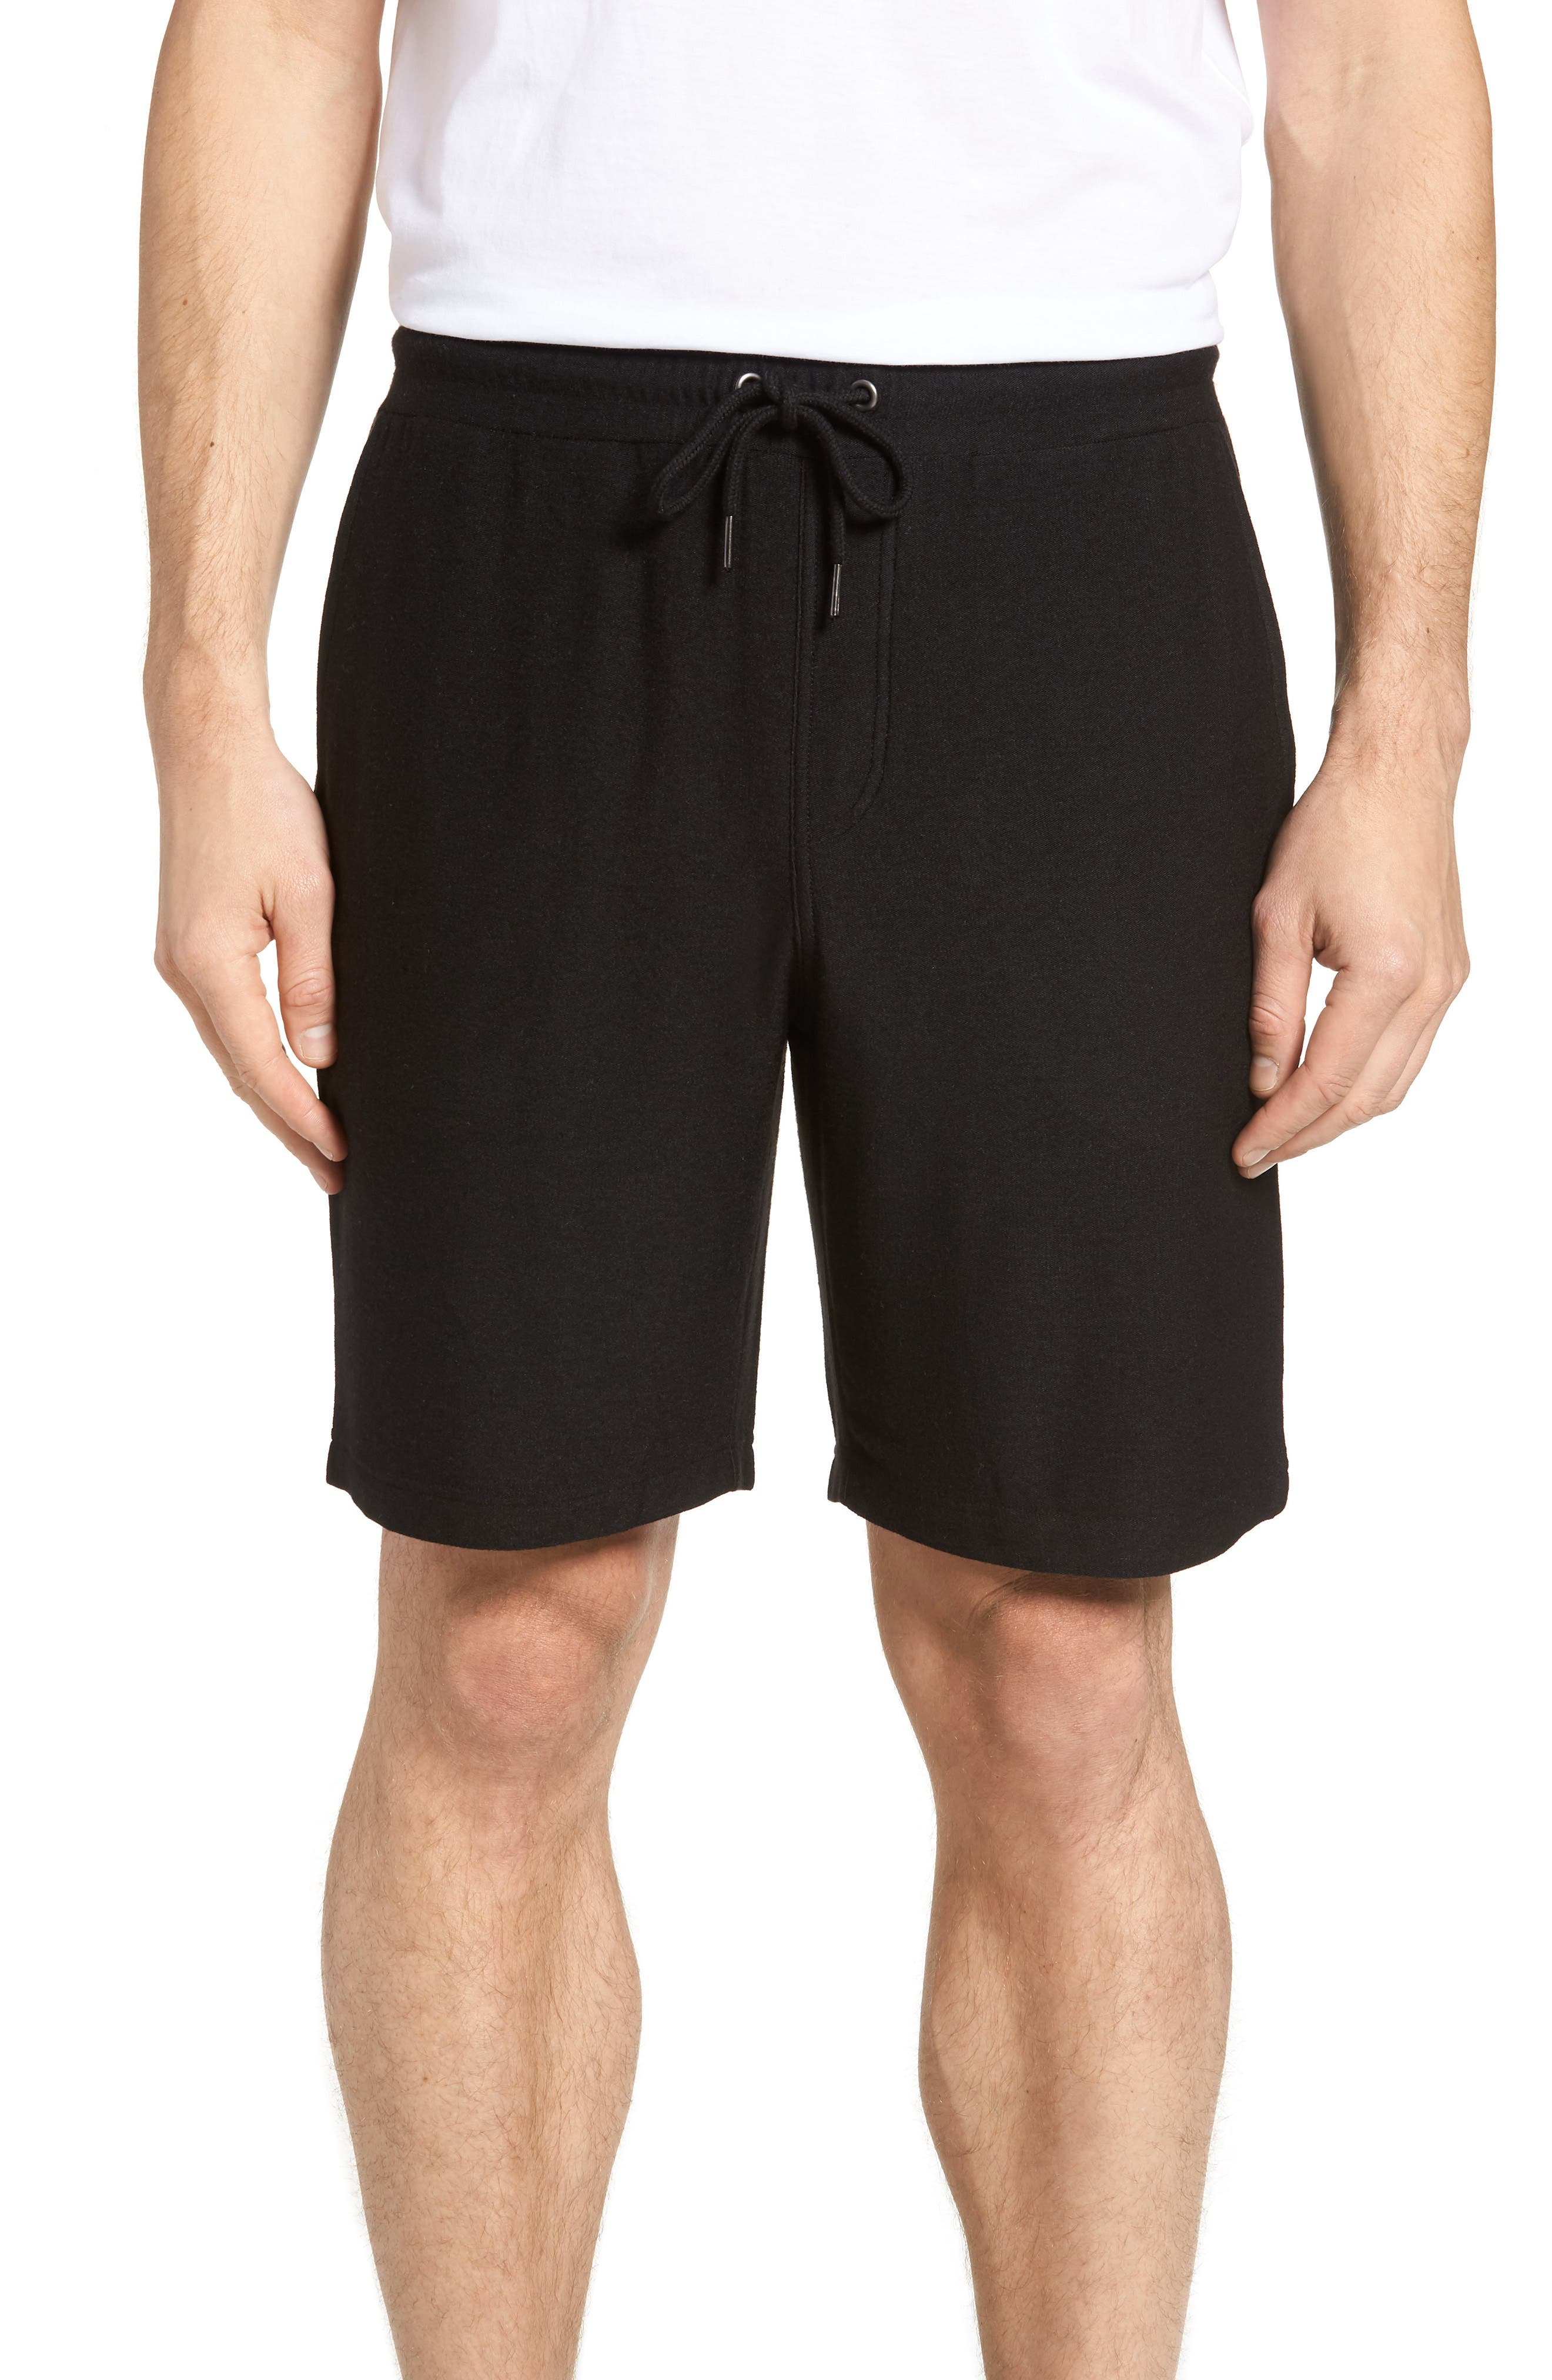 Lounge Shorts,                             Main thumbnail 1, color,                             BLACK